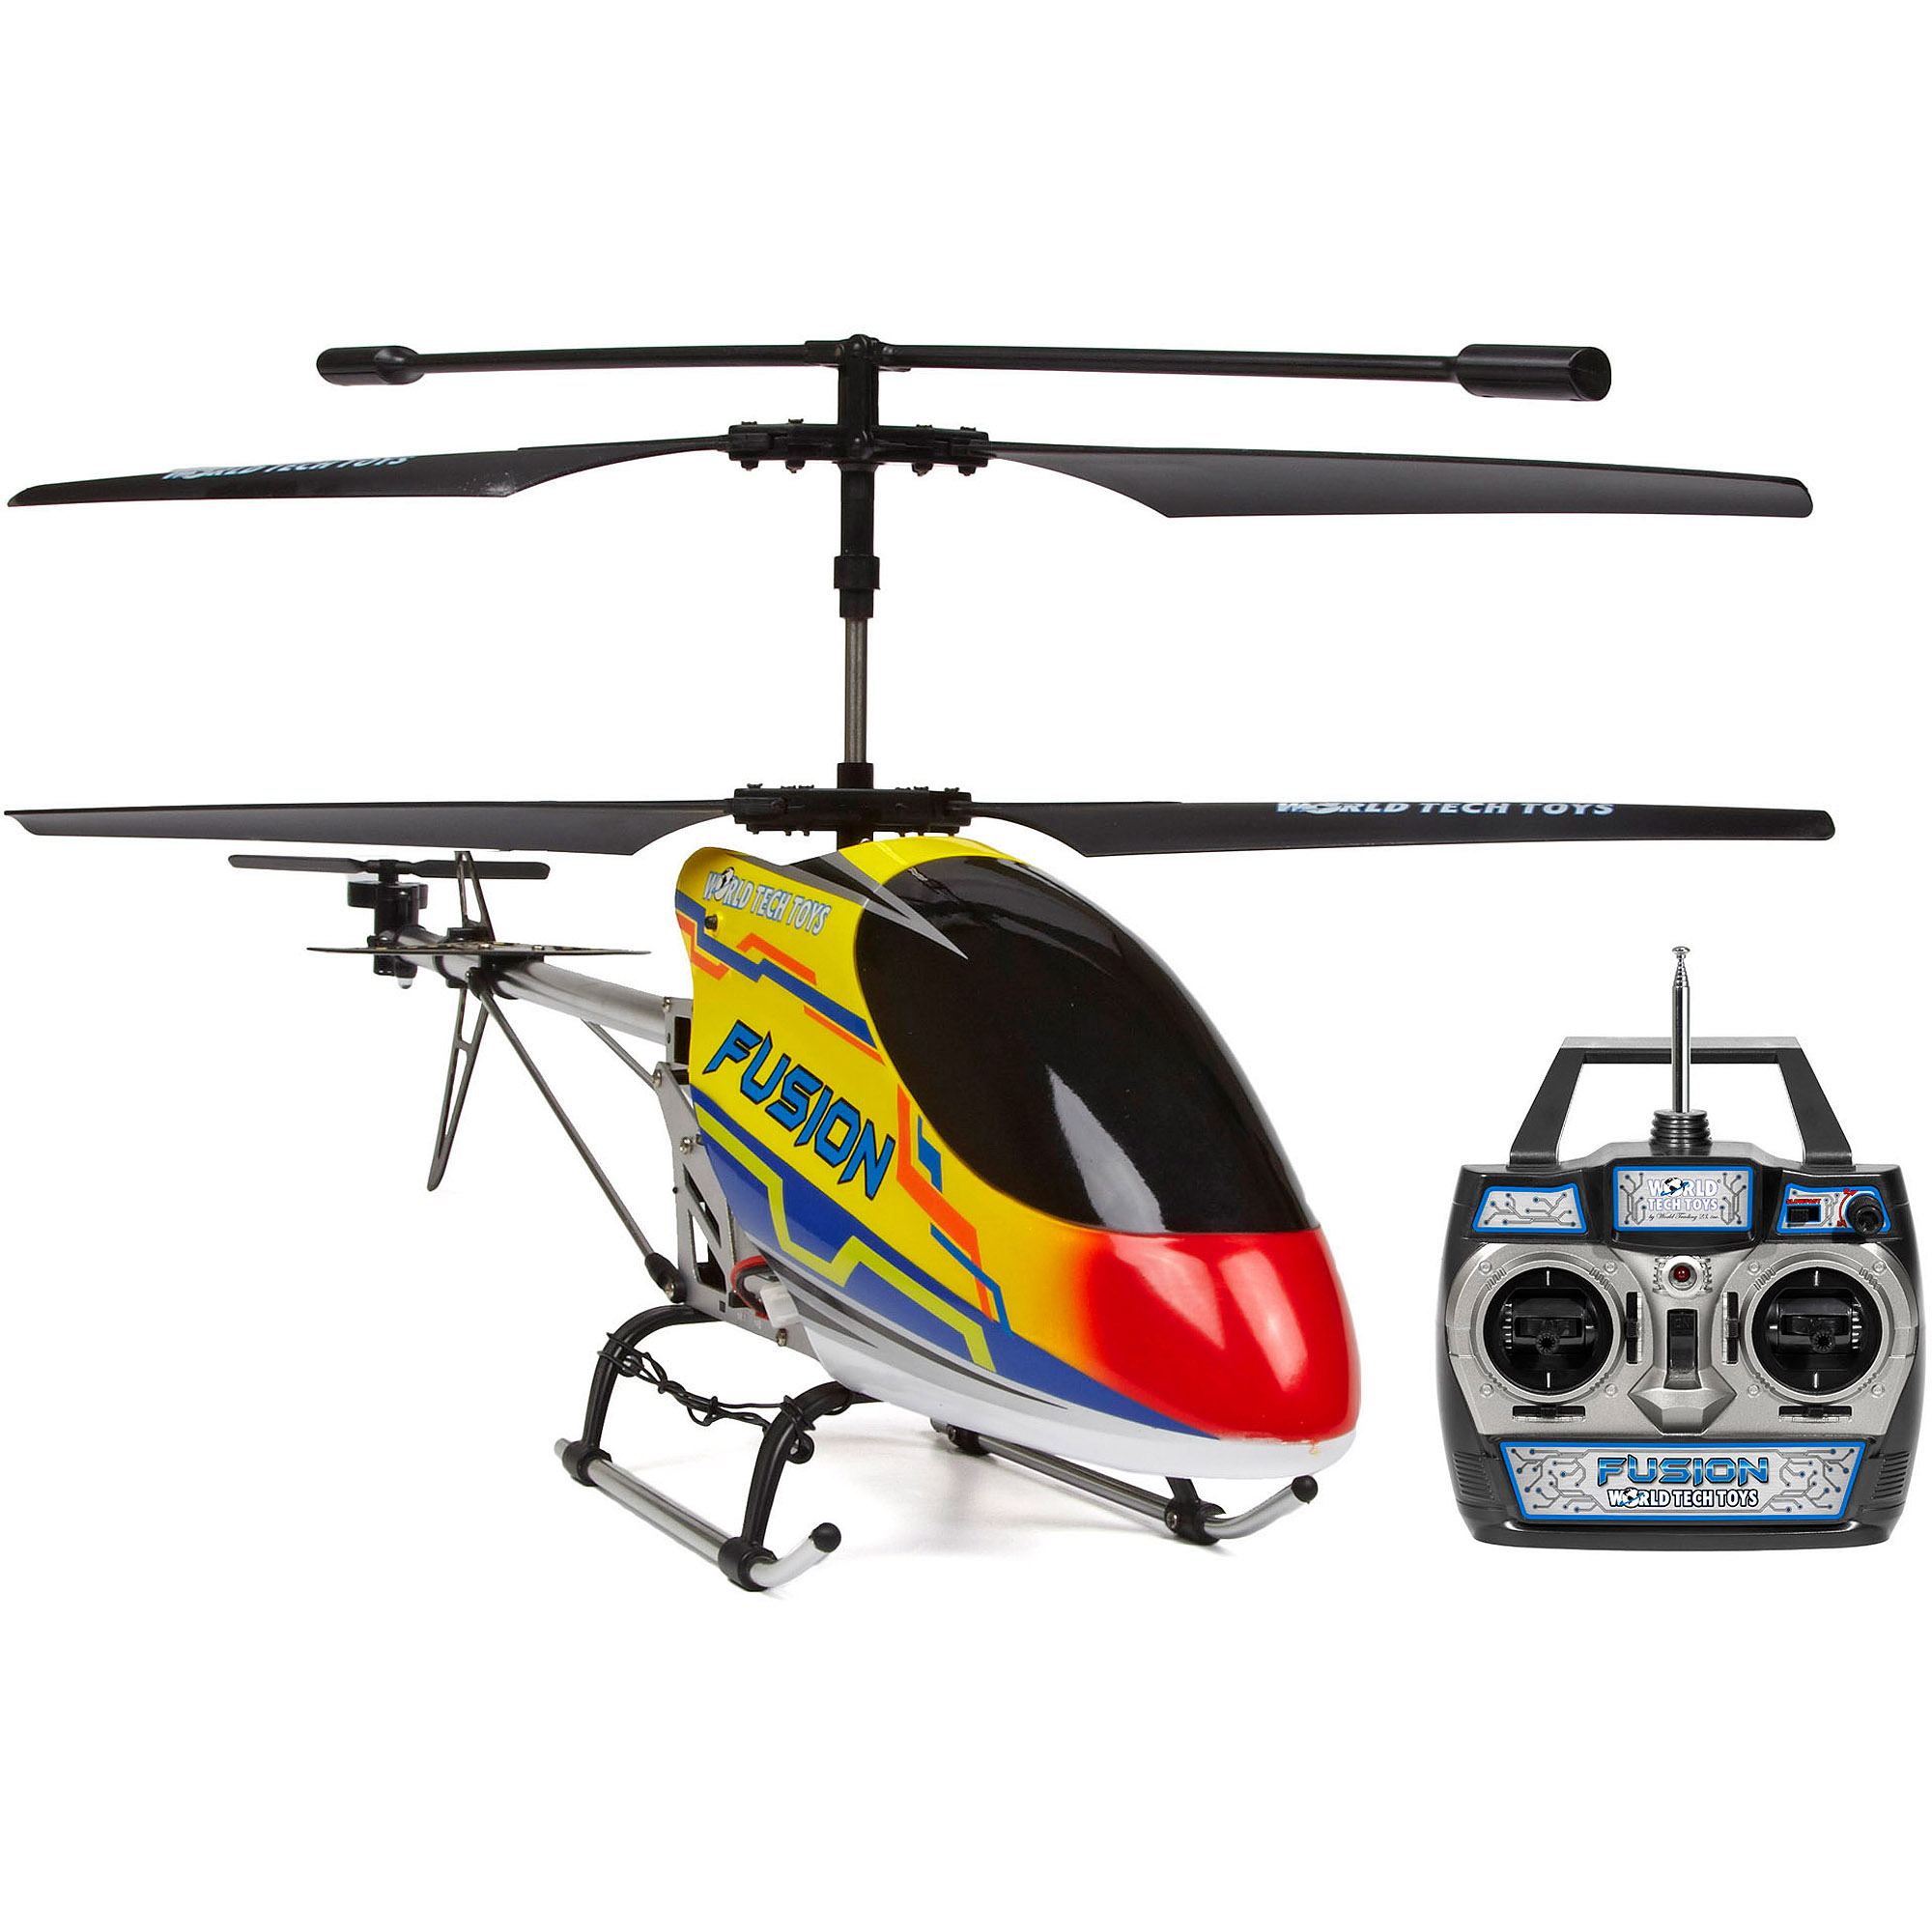 World Tech Toys GYRO Fusion 3.5CH Outdoor RC Helicopter by World Tech Toys